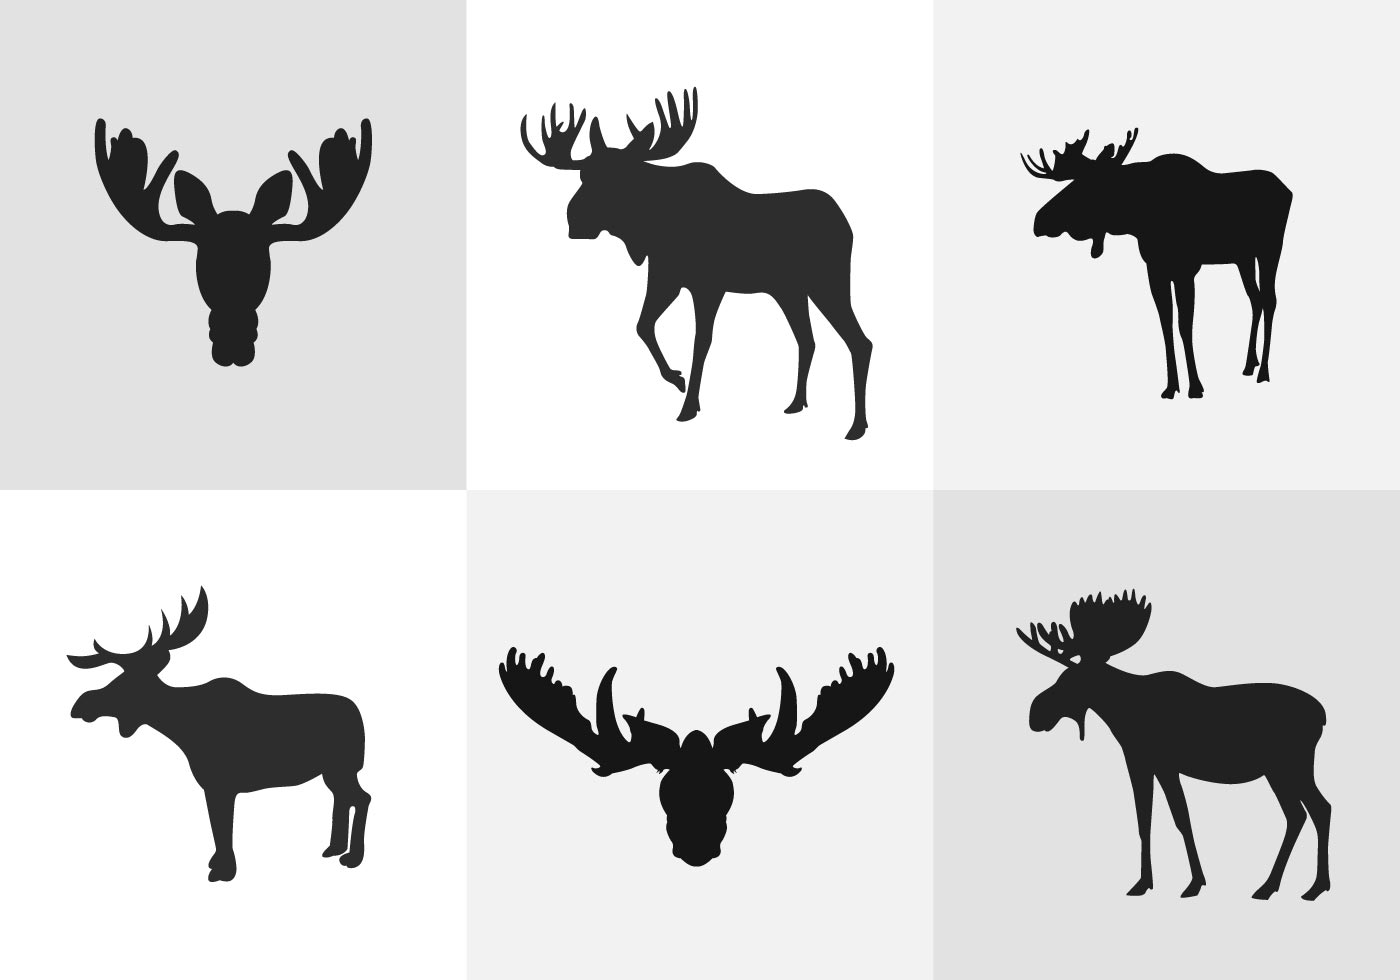 moose silhouette silhouette of moose stock vector perysty 3129902 silhouette moose